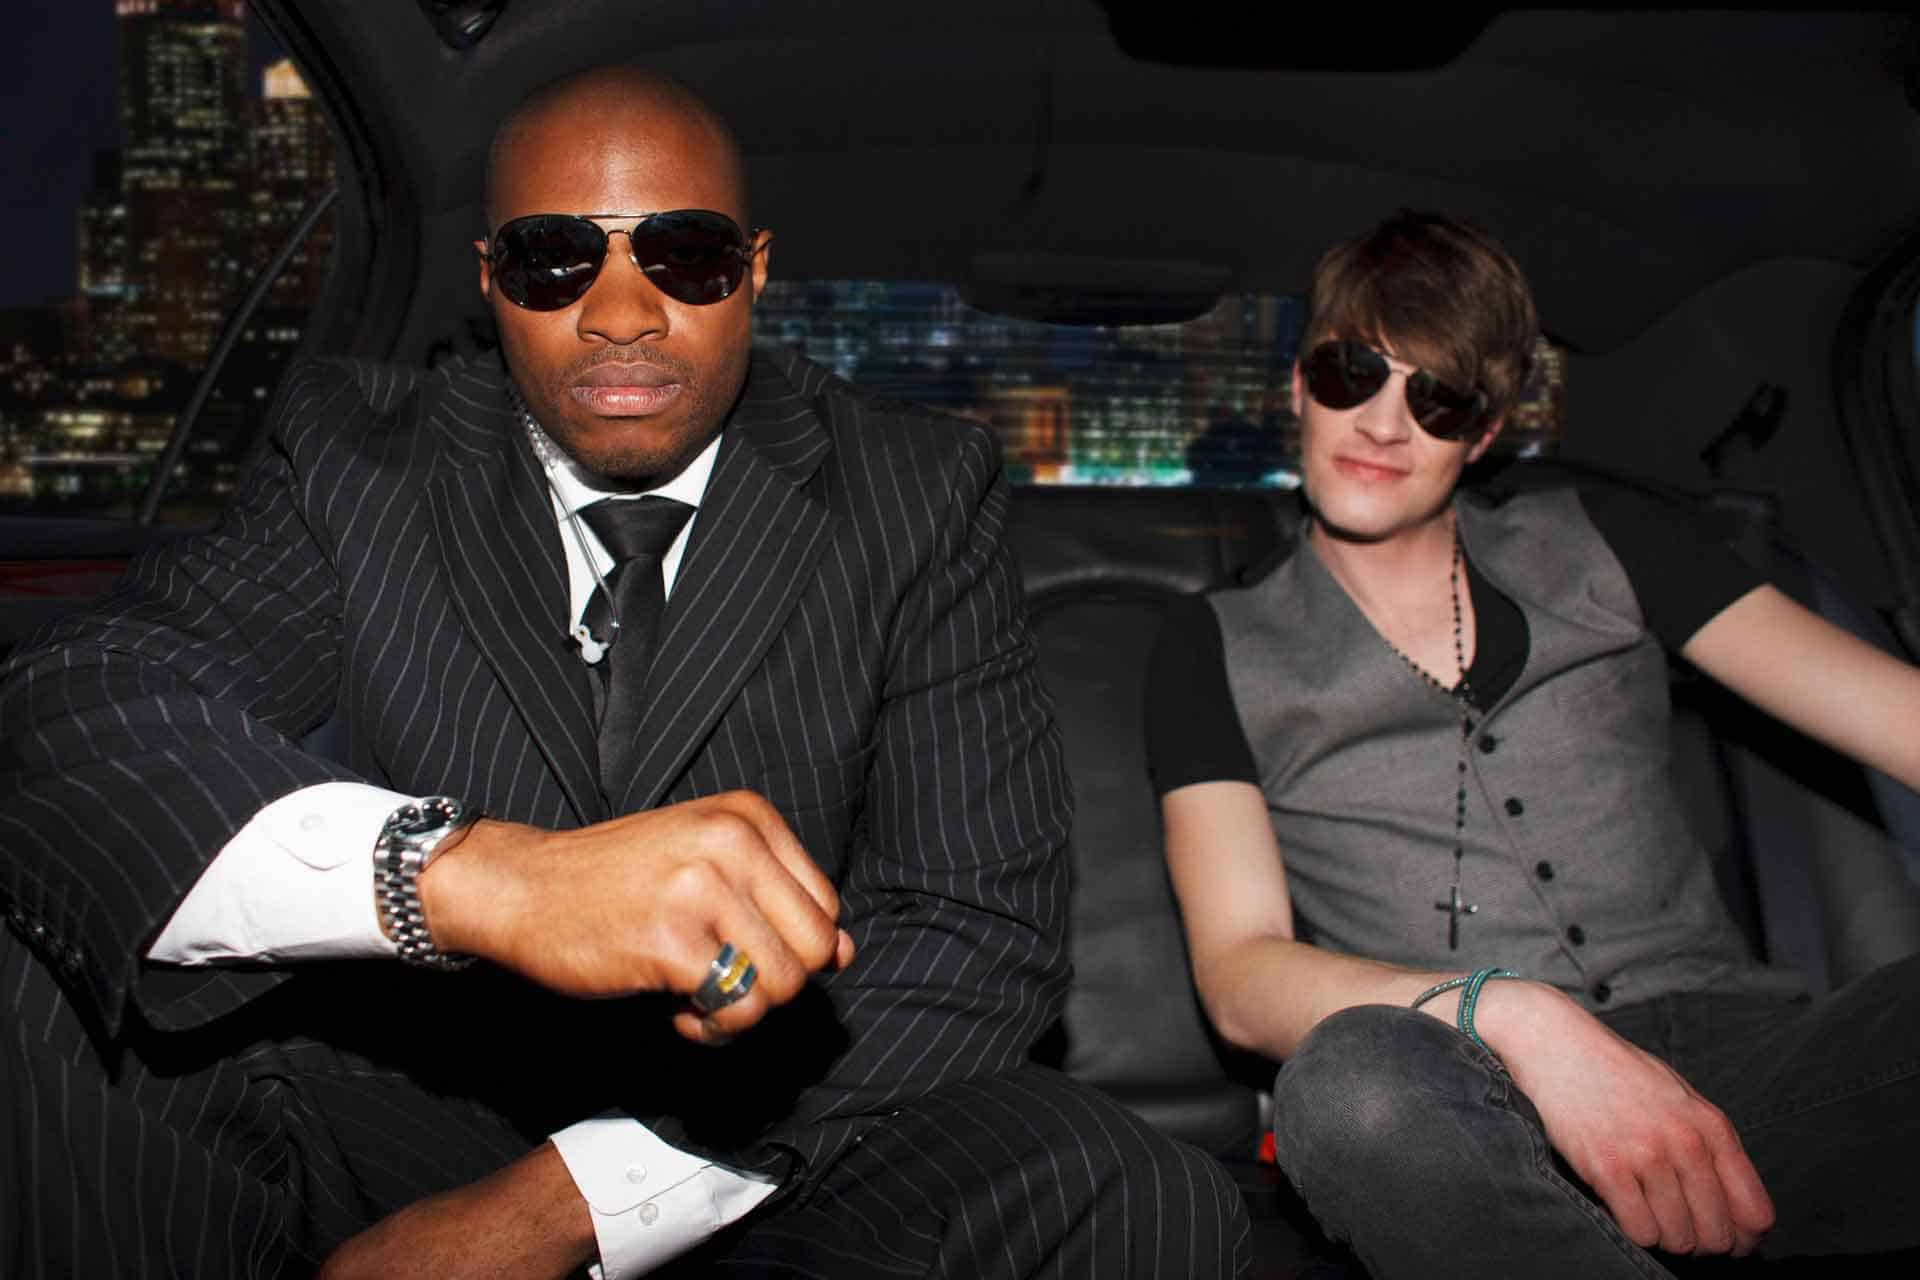 Celebrity and bodyguard in a limo